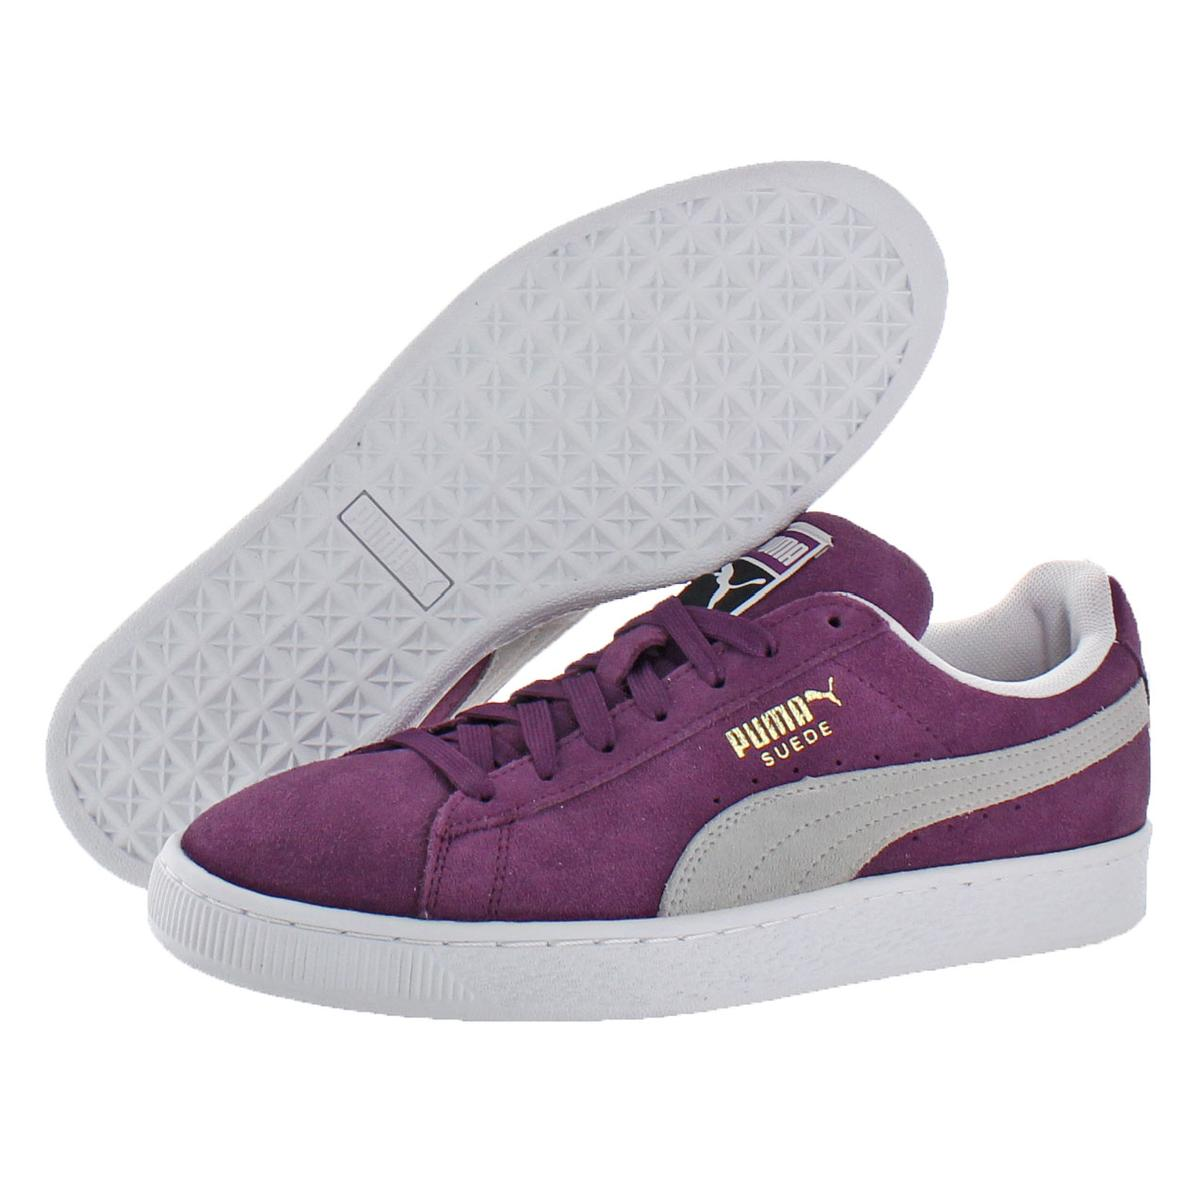 Puma-Suede-Classic-Men-039-s-Fashion-Sneakers-Shoes thumbnail 16